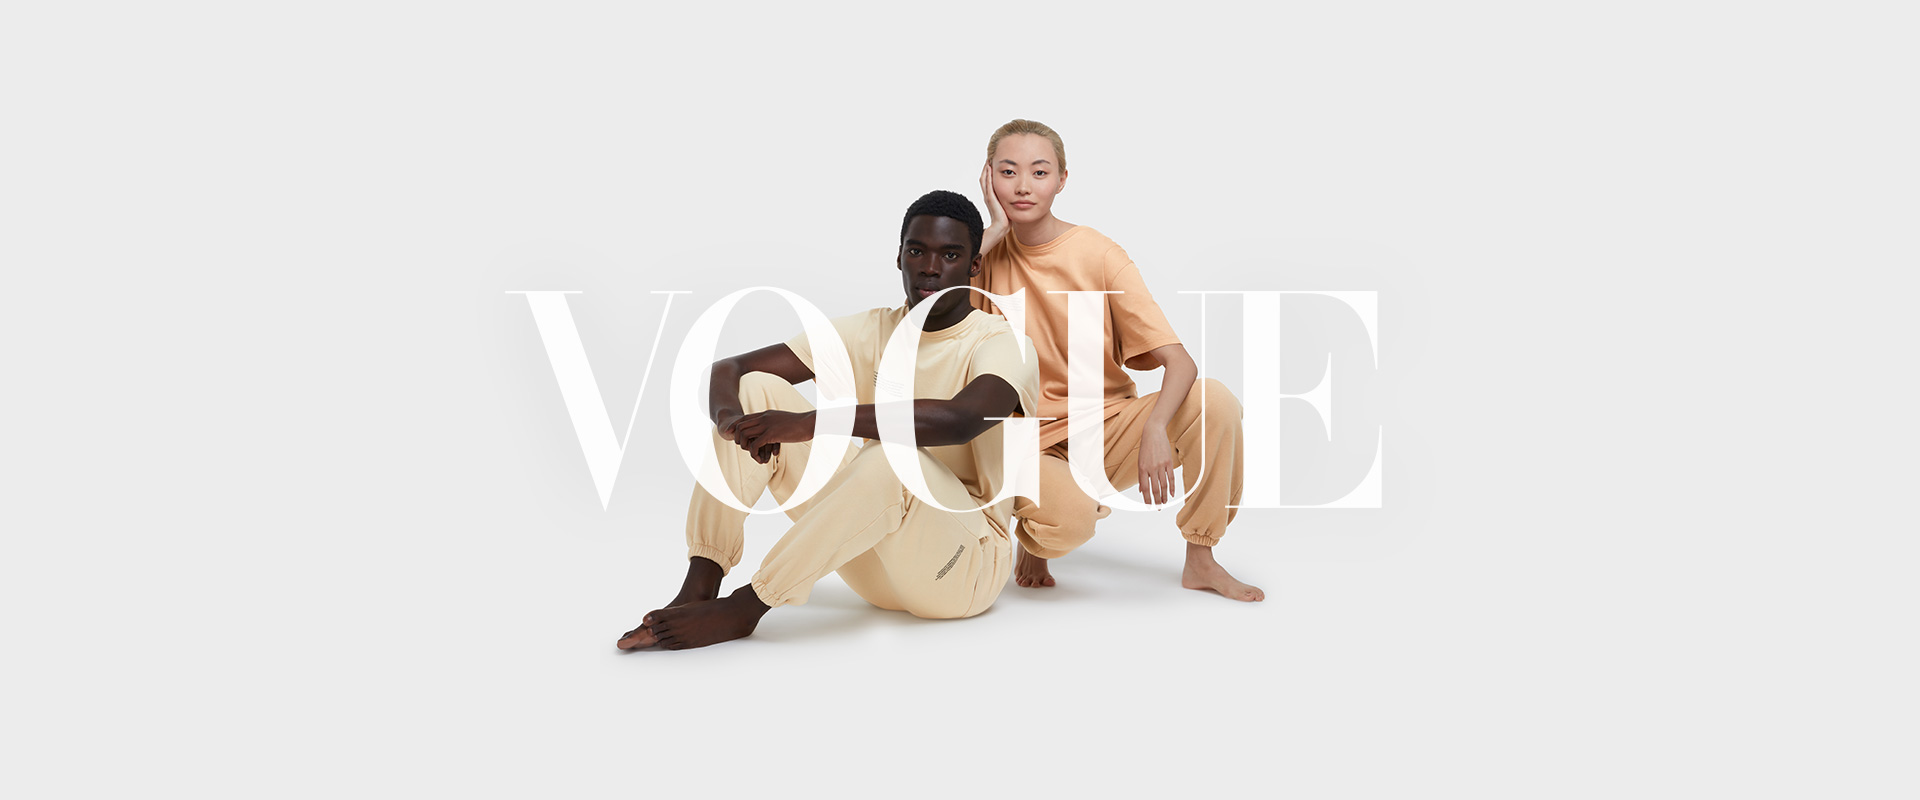 Pangaia in Vogue Online